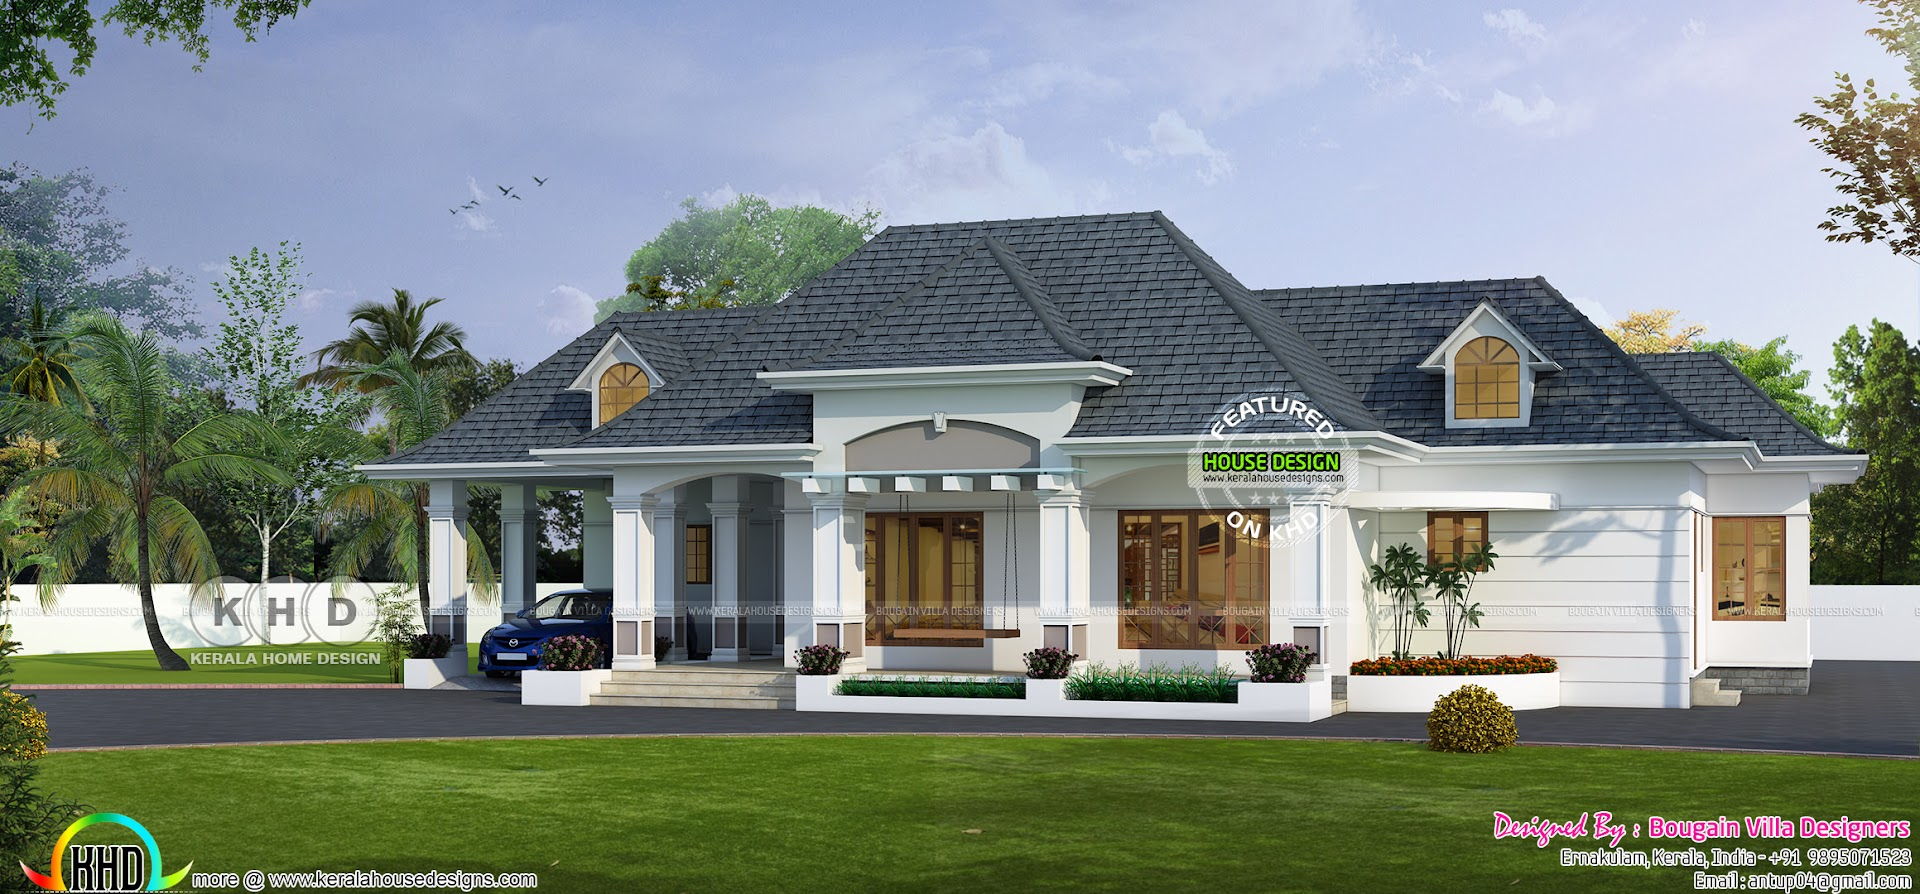 Classic Bungalow Architecture 2750 Sq Ft Kerala Home